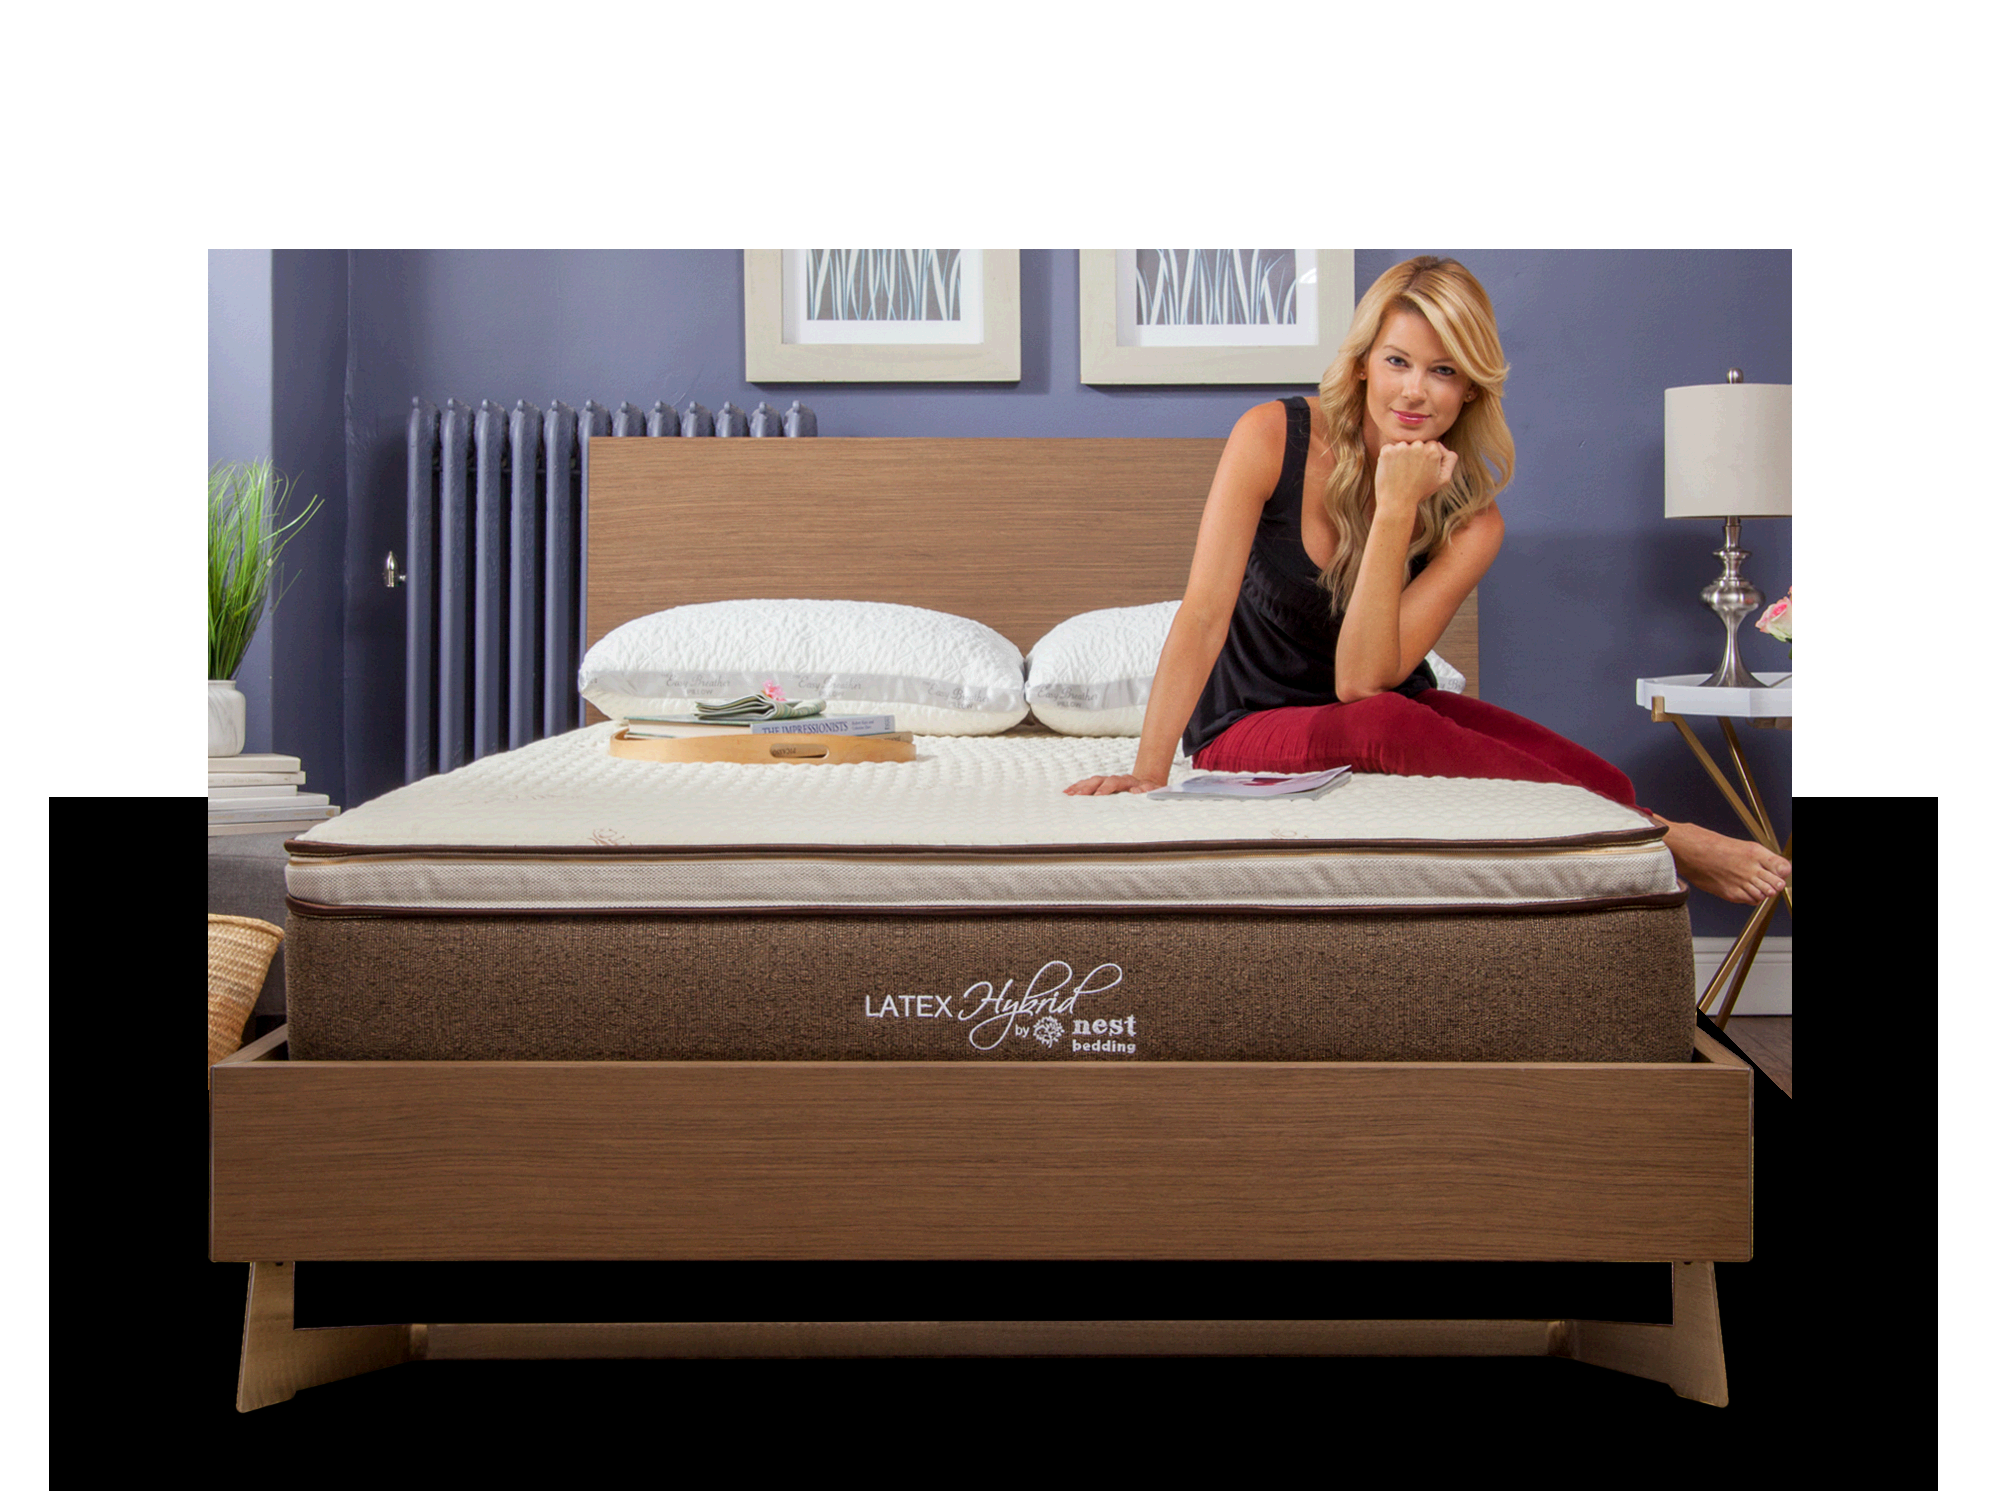 media hybrid layers mattress page album nest alexander view